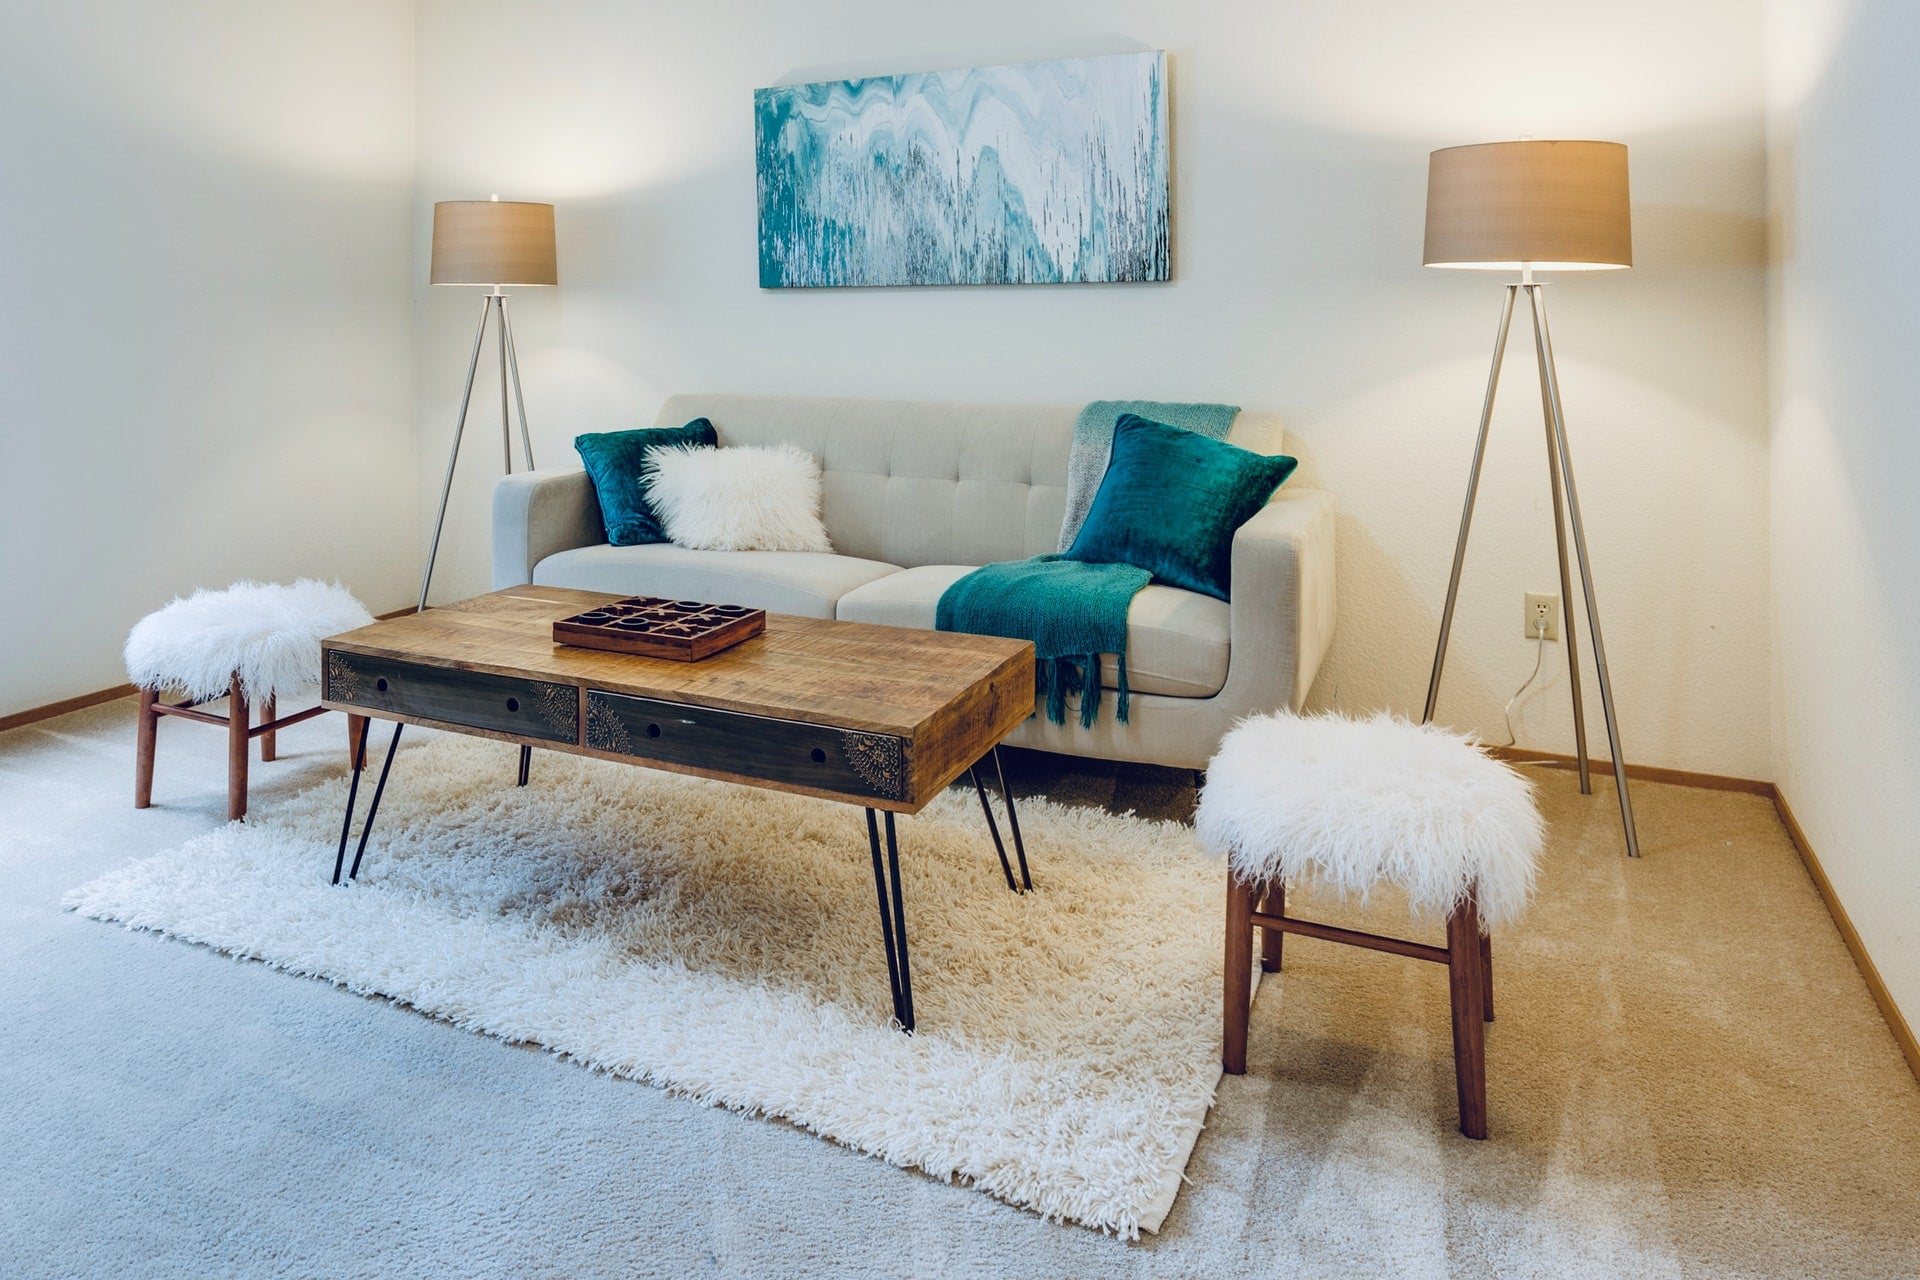 Rugs & Textiles for cozy home